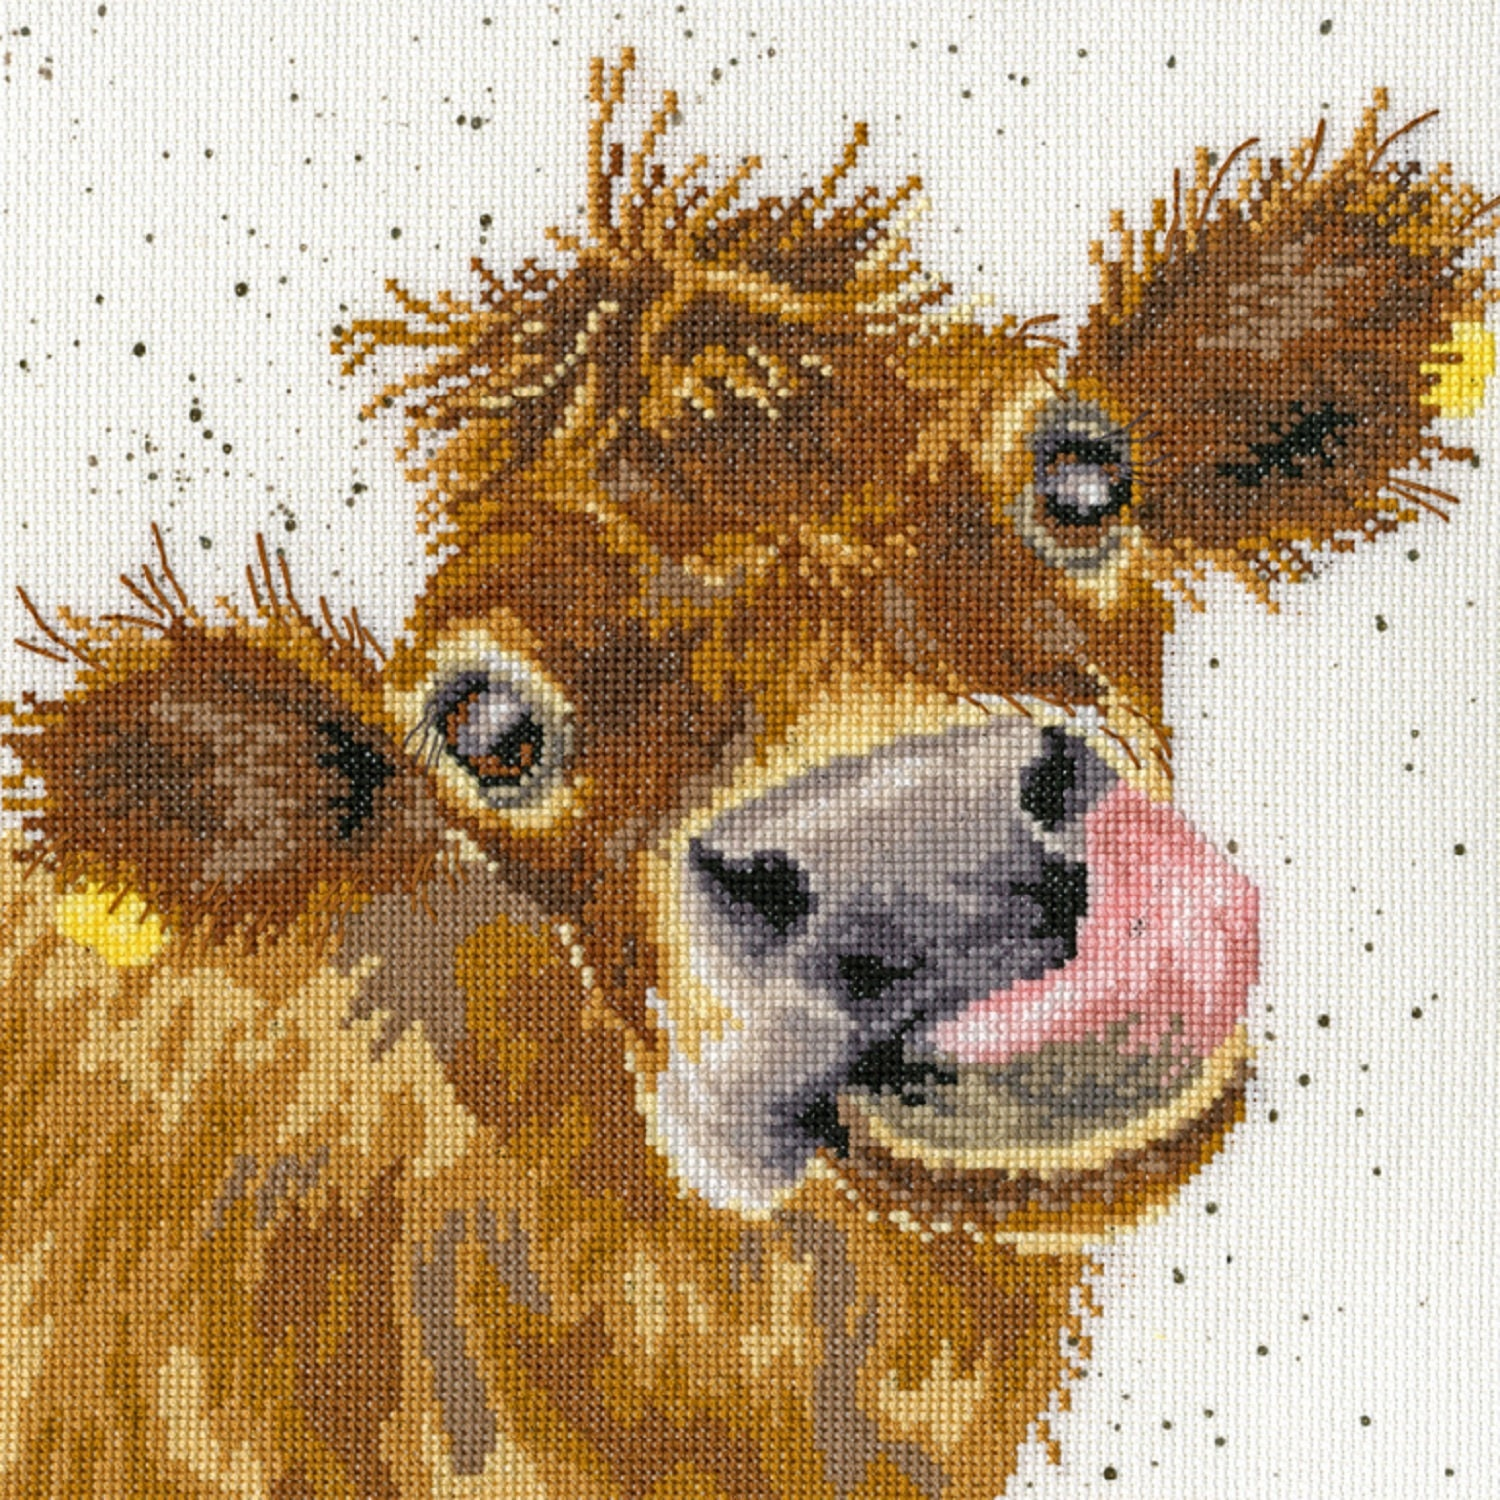 Bothy Threads Counted Cross Stitch Kit by Wrendale Designs by Bothy Threads Jolly Robin